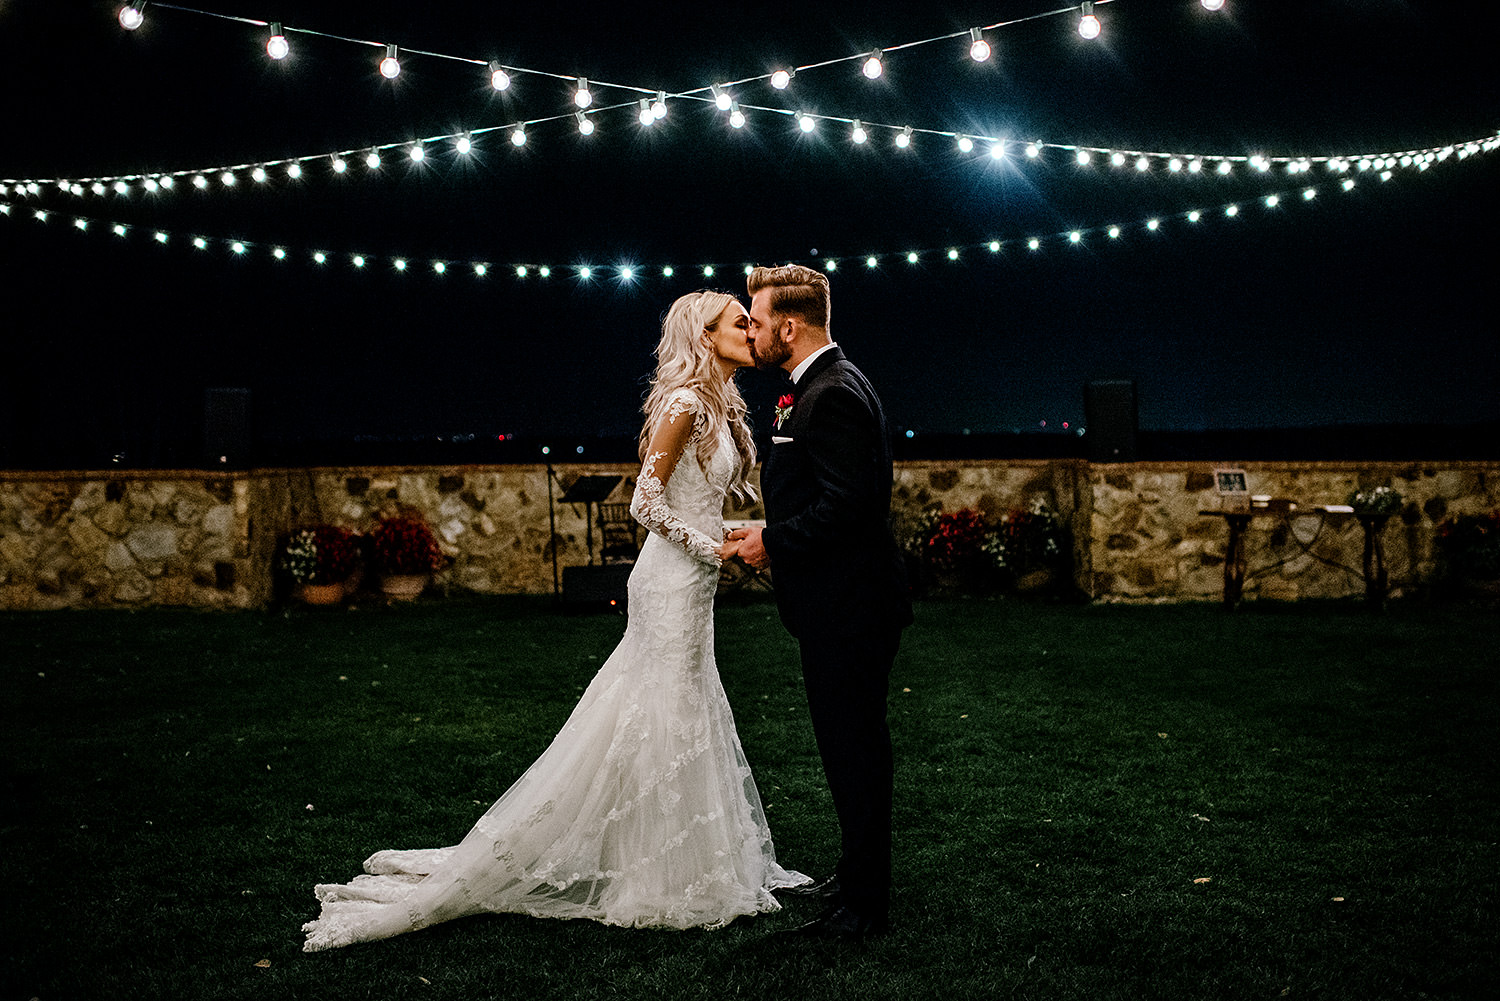 A night time portrait of a bride and groom kissing under hanging string lights at Bella Collina Florida